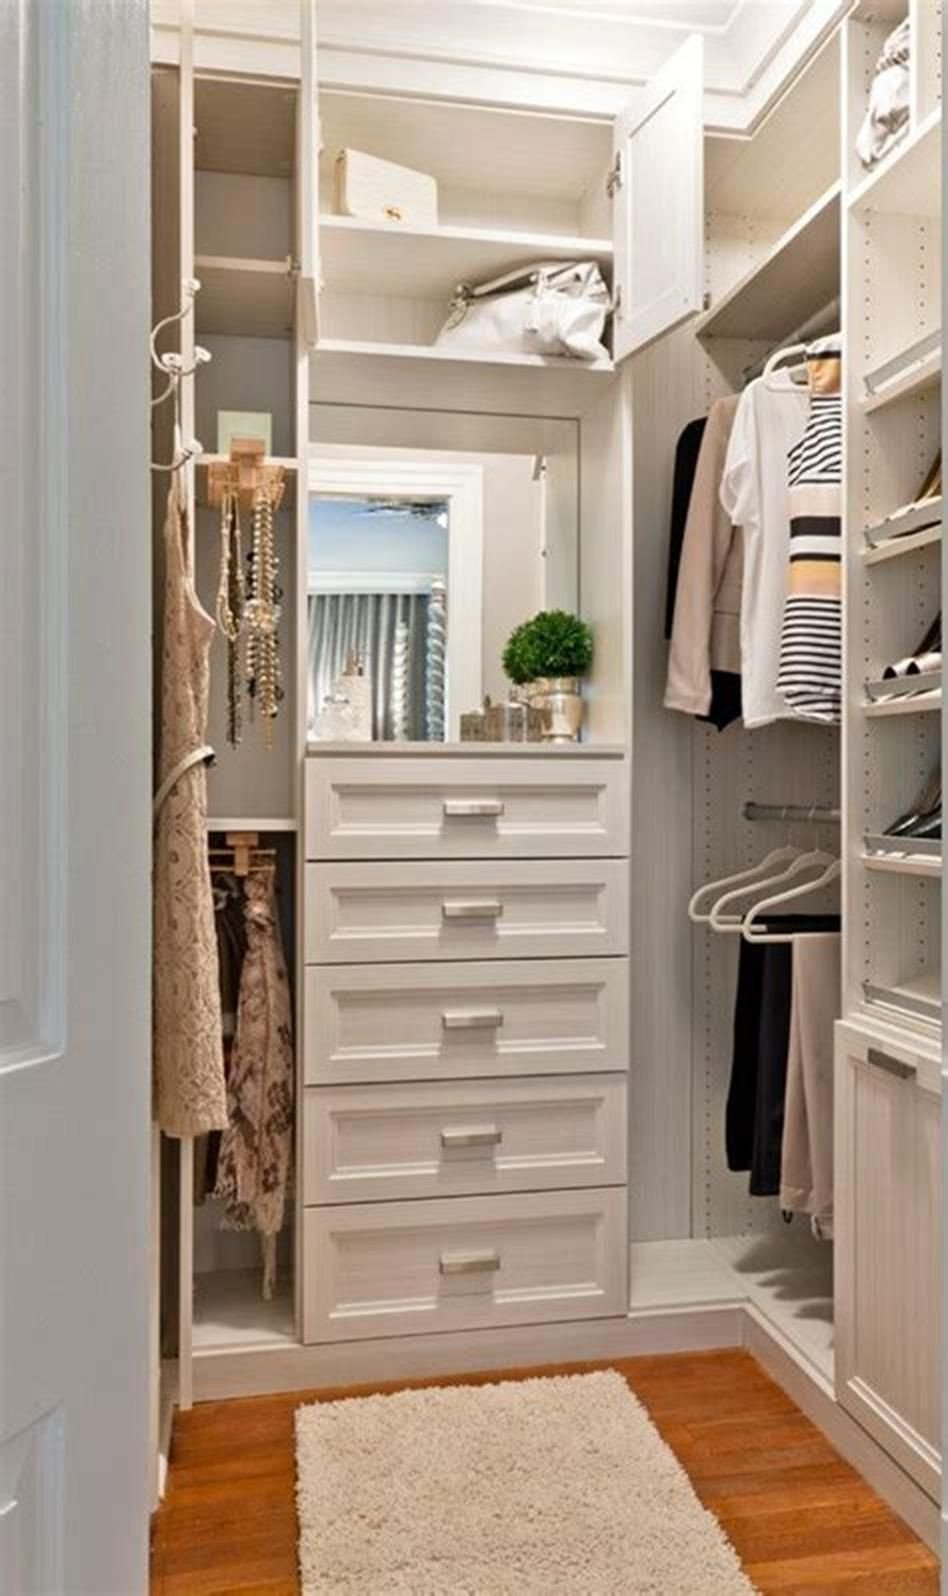 Organization Tips for Bedroom Fresh 40 Best Small Walk In Bedroom Closet organization and